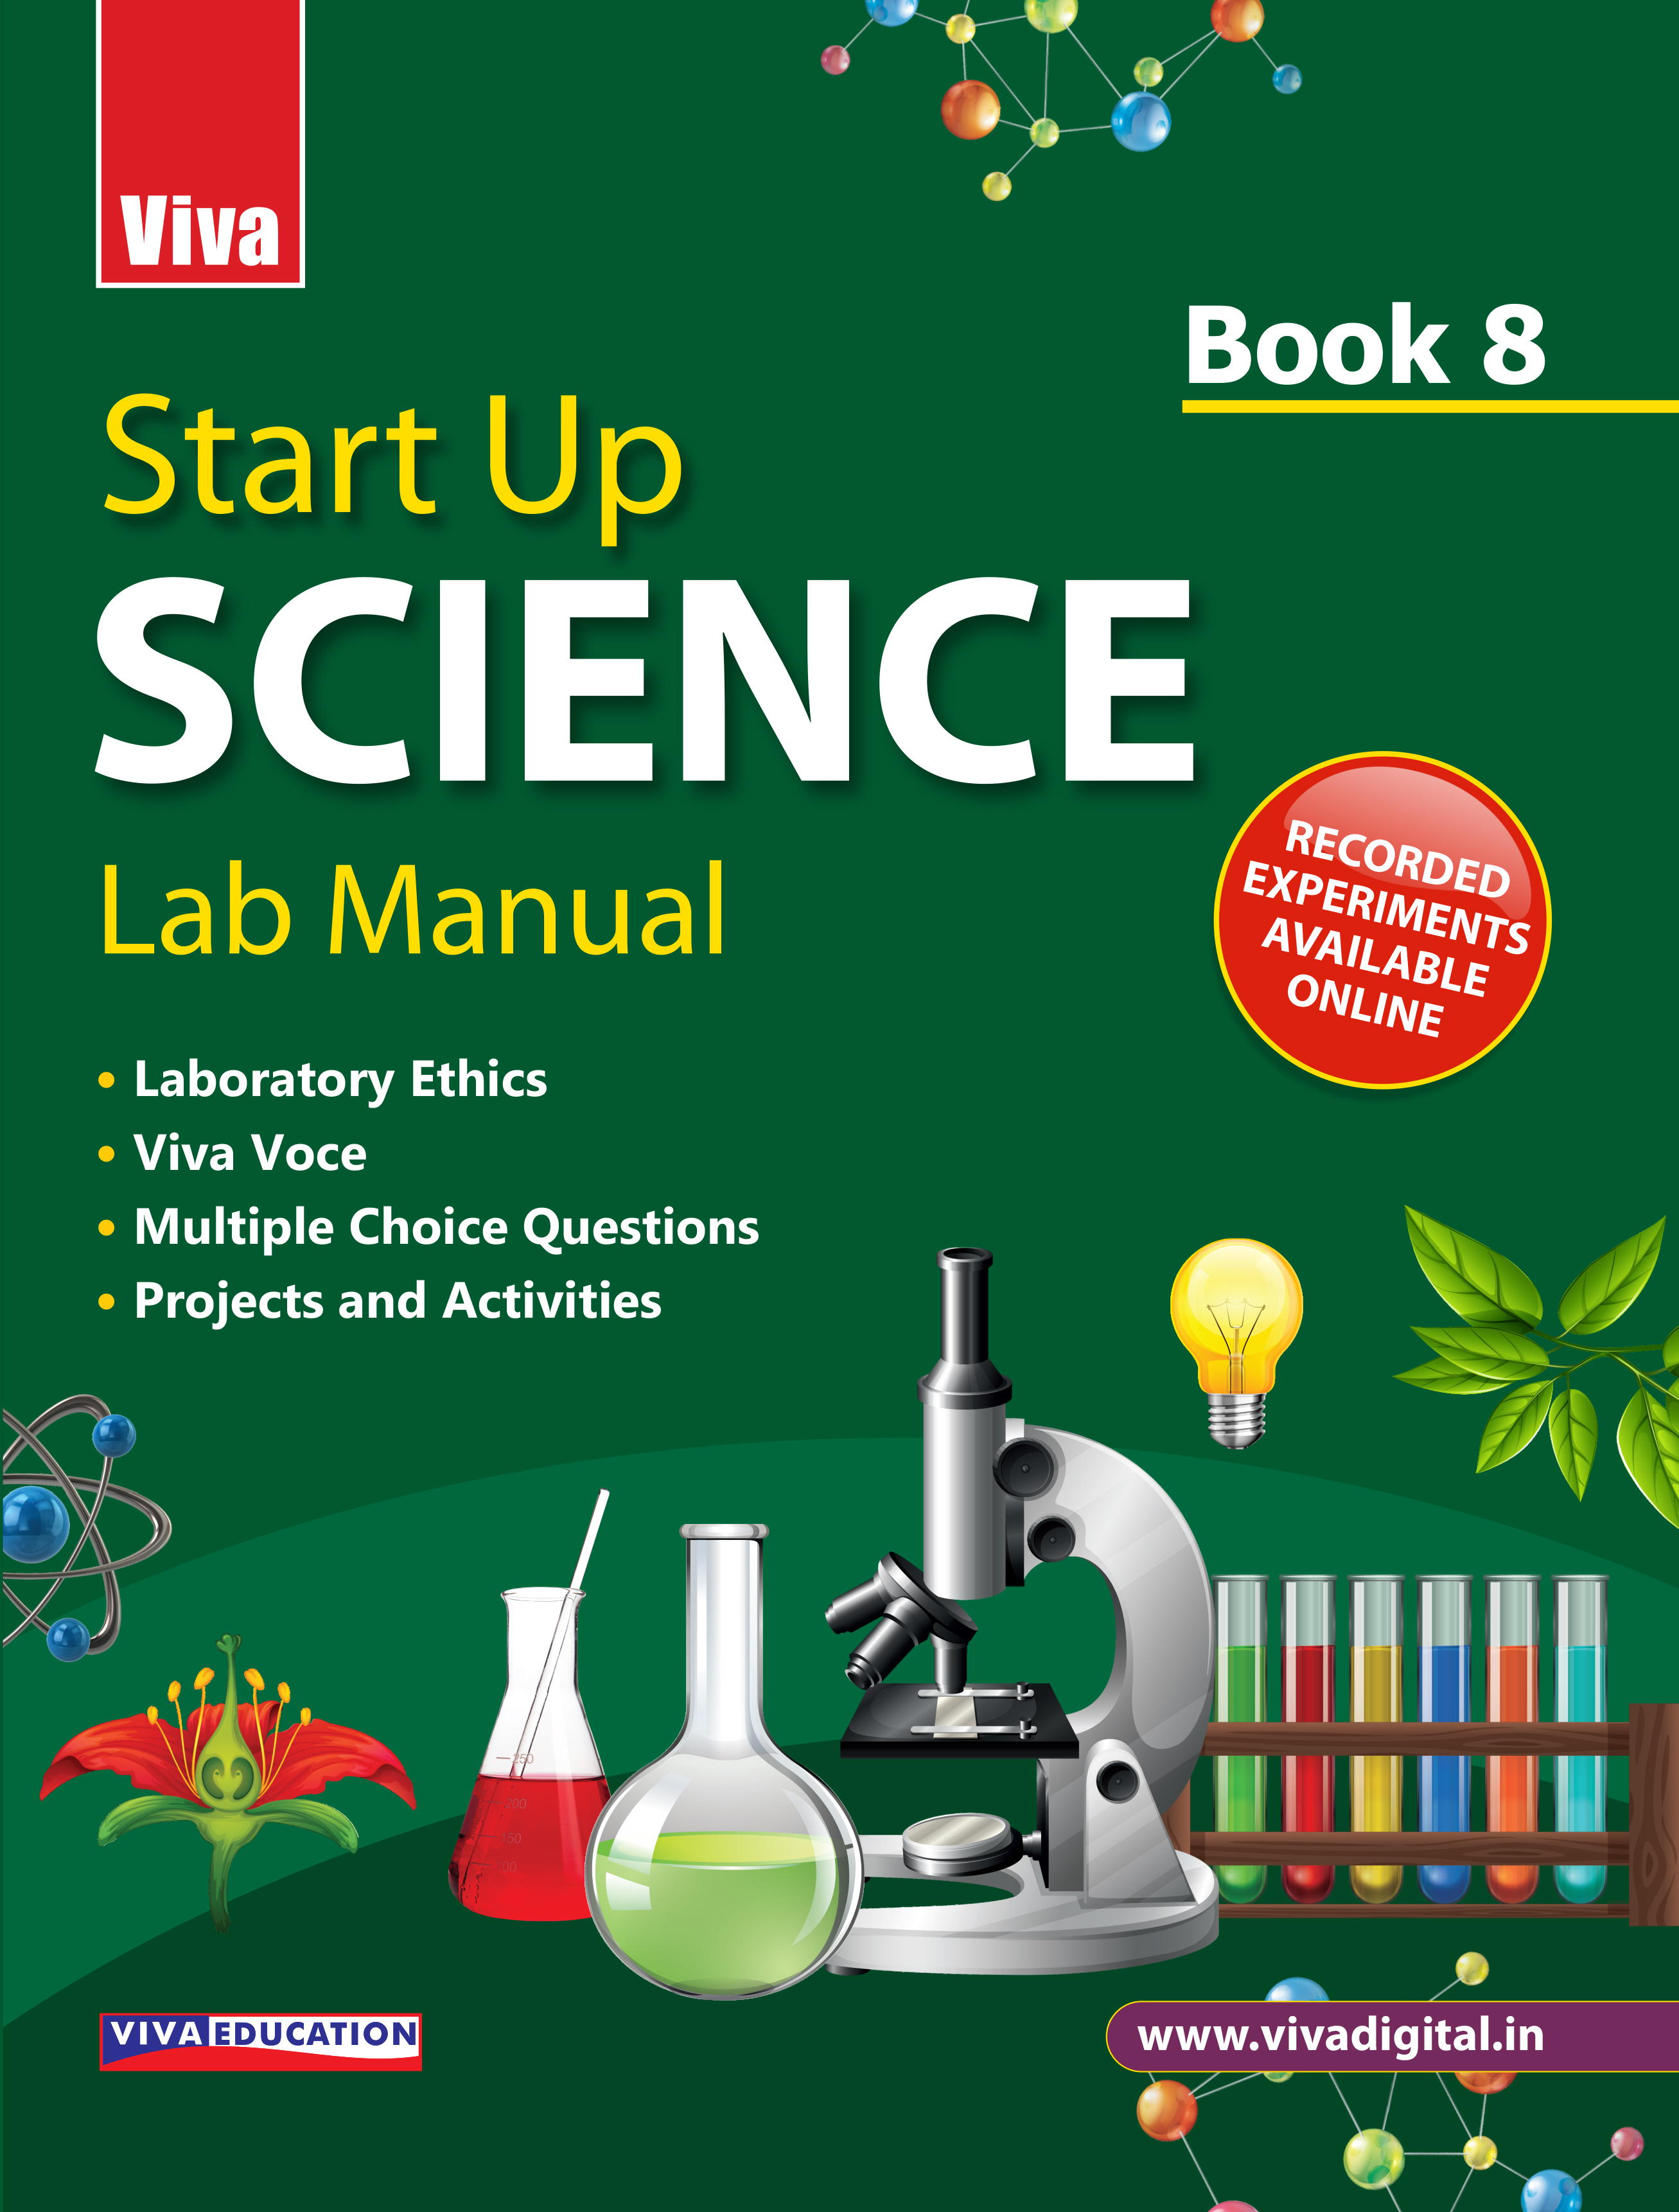 Start Up Science Lab Manual - 8